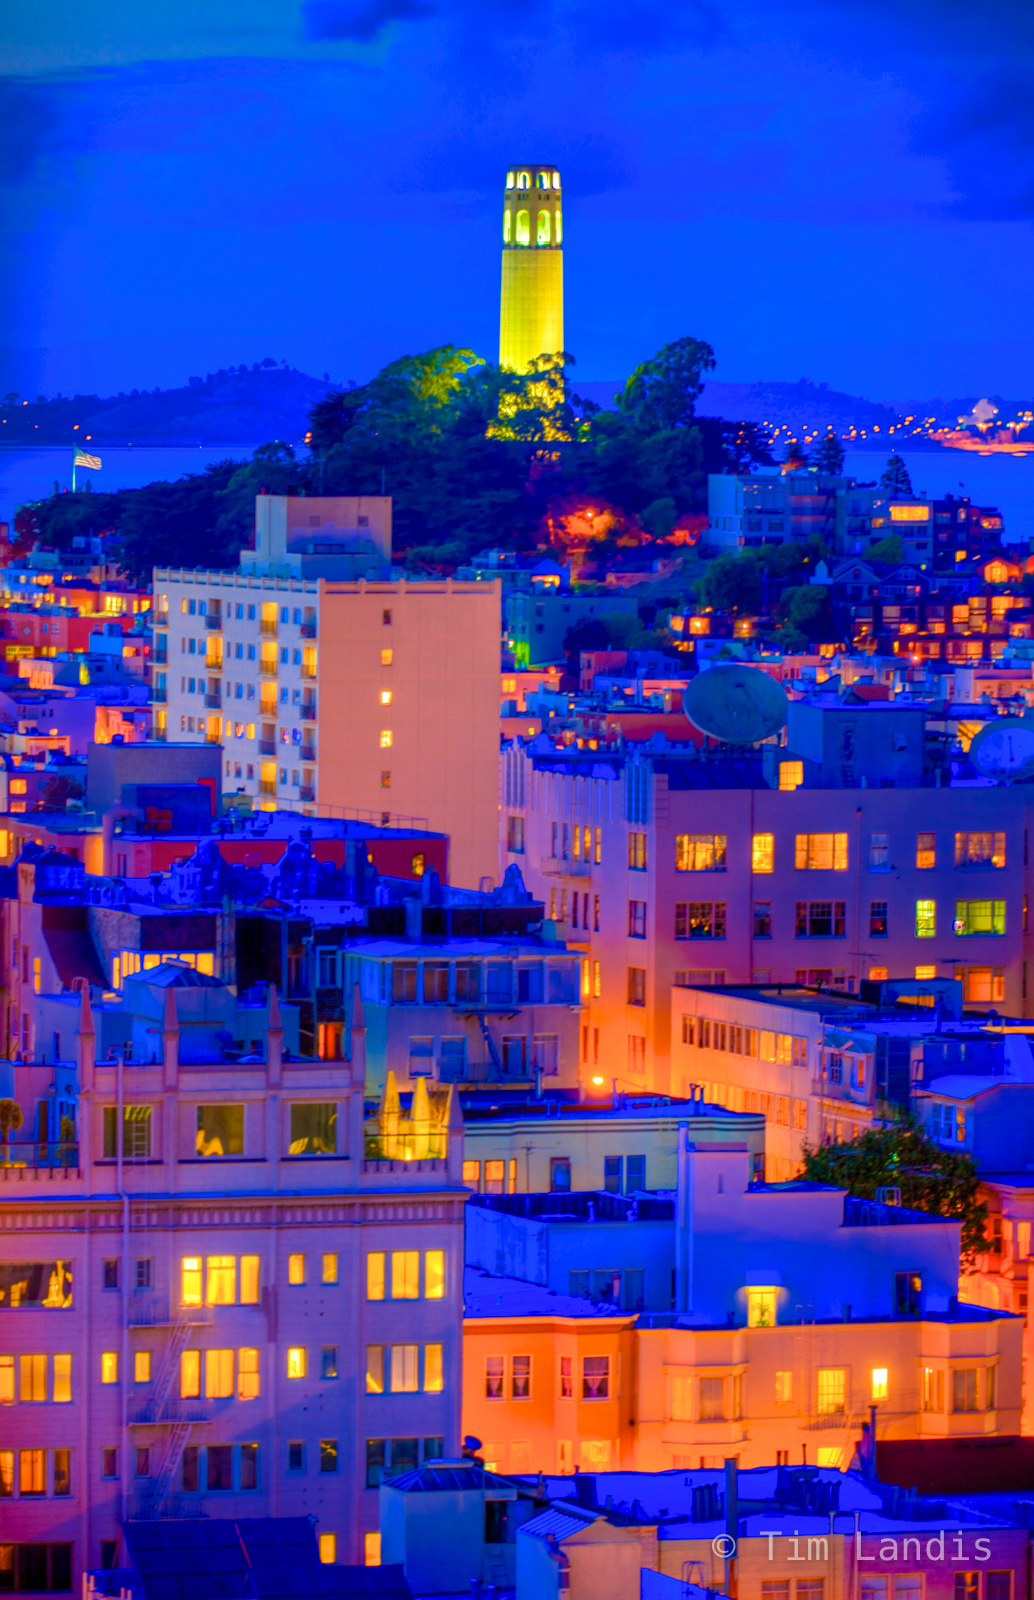 Calif, Coit Tower, Coit Tower after the sunsets, SF, and the lights come up in the city, photo